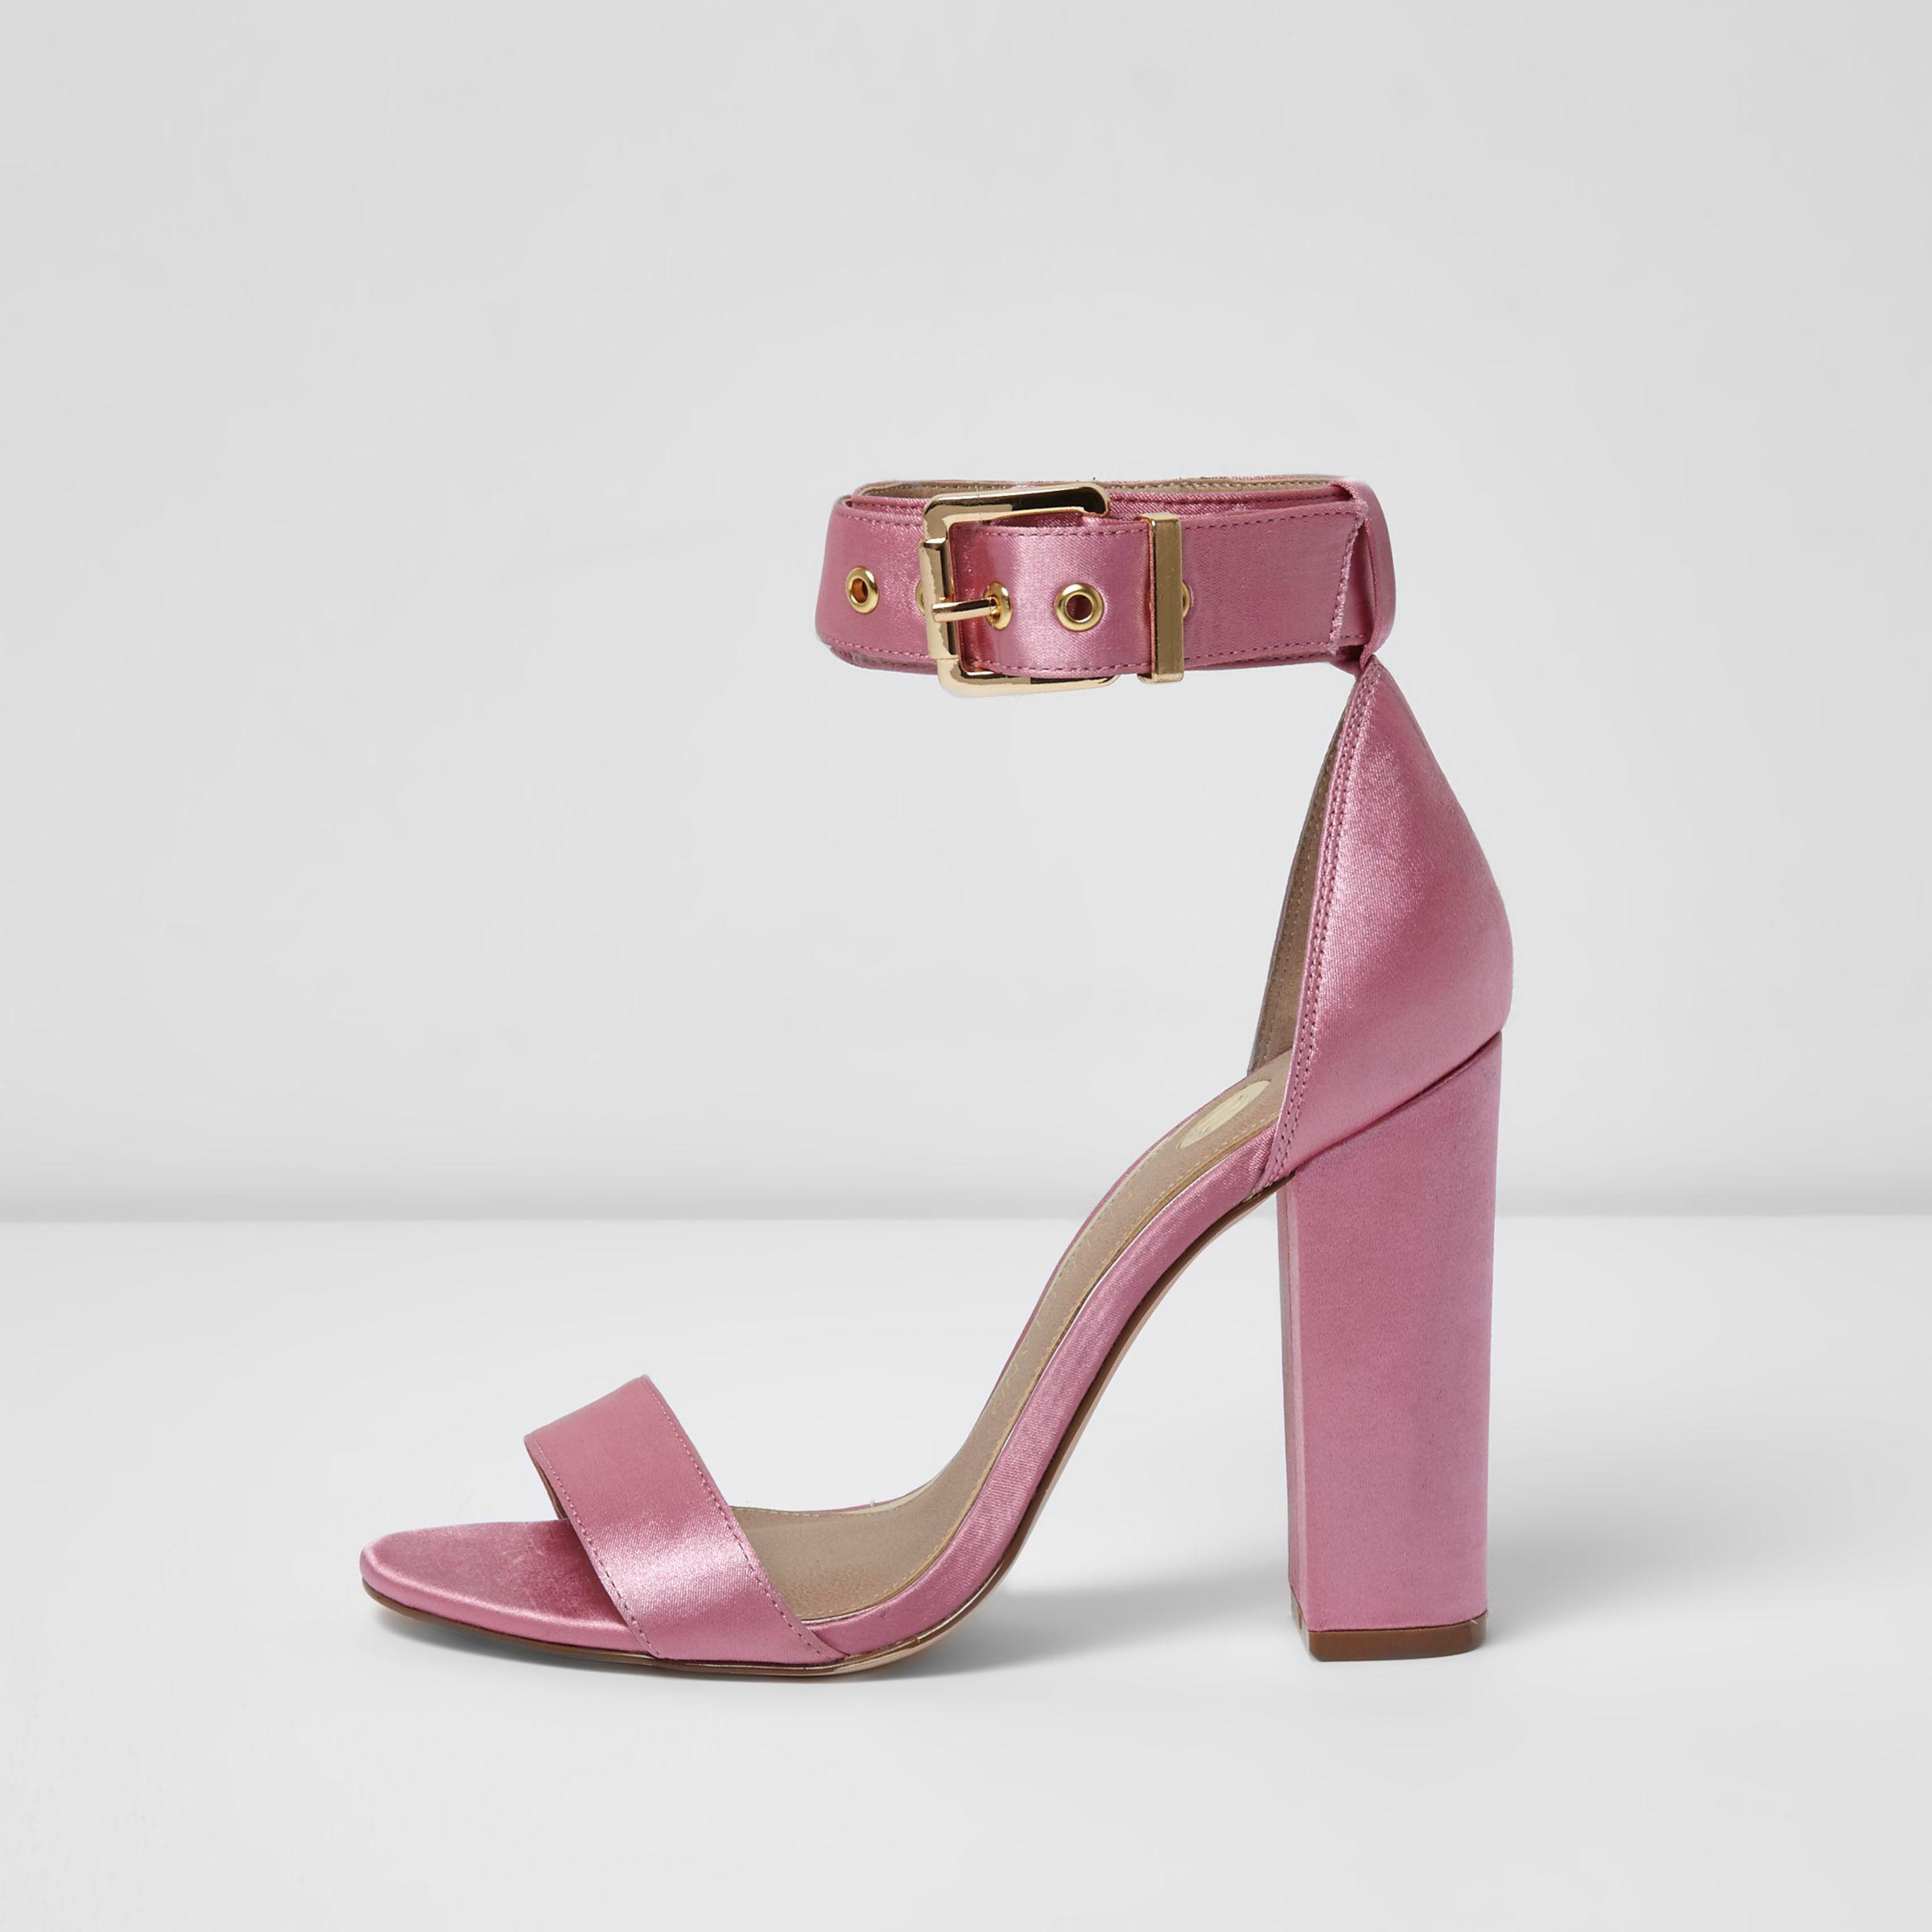 33df152e09b Lyst - River Island Pink Satin Two Part Block Heel Sandals in Pink